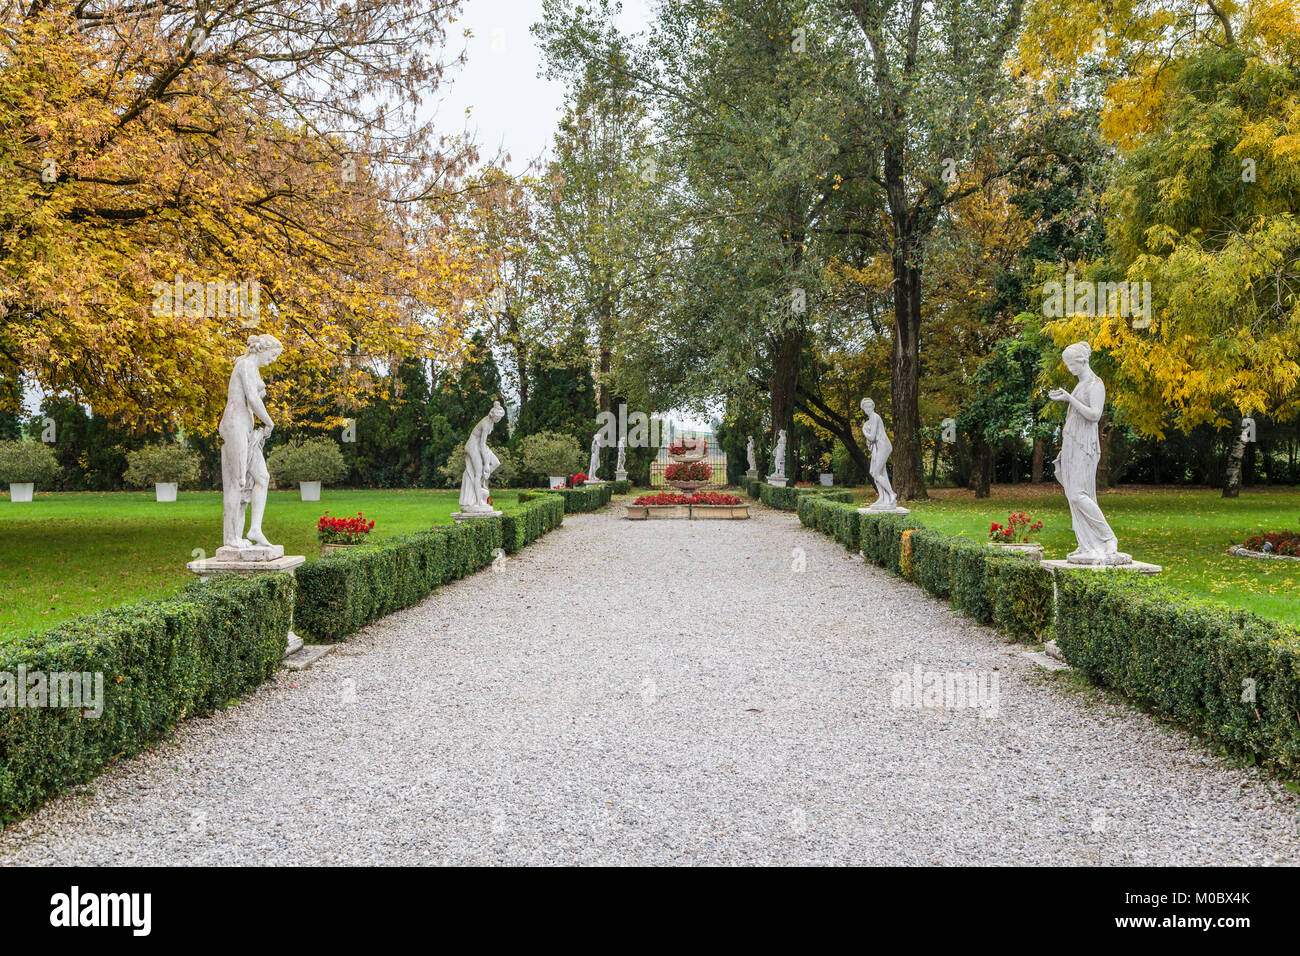 Fal foliage in the gardens of the Villa Braida Hotel in Veneto, Mogliano, Venice, Italy, Europe. Stock Photo